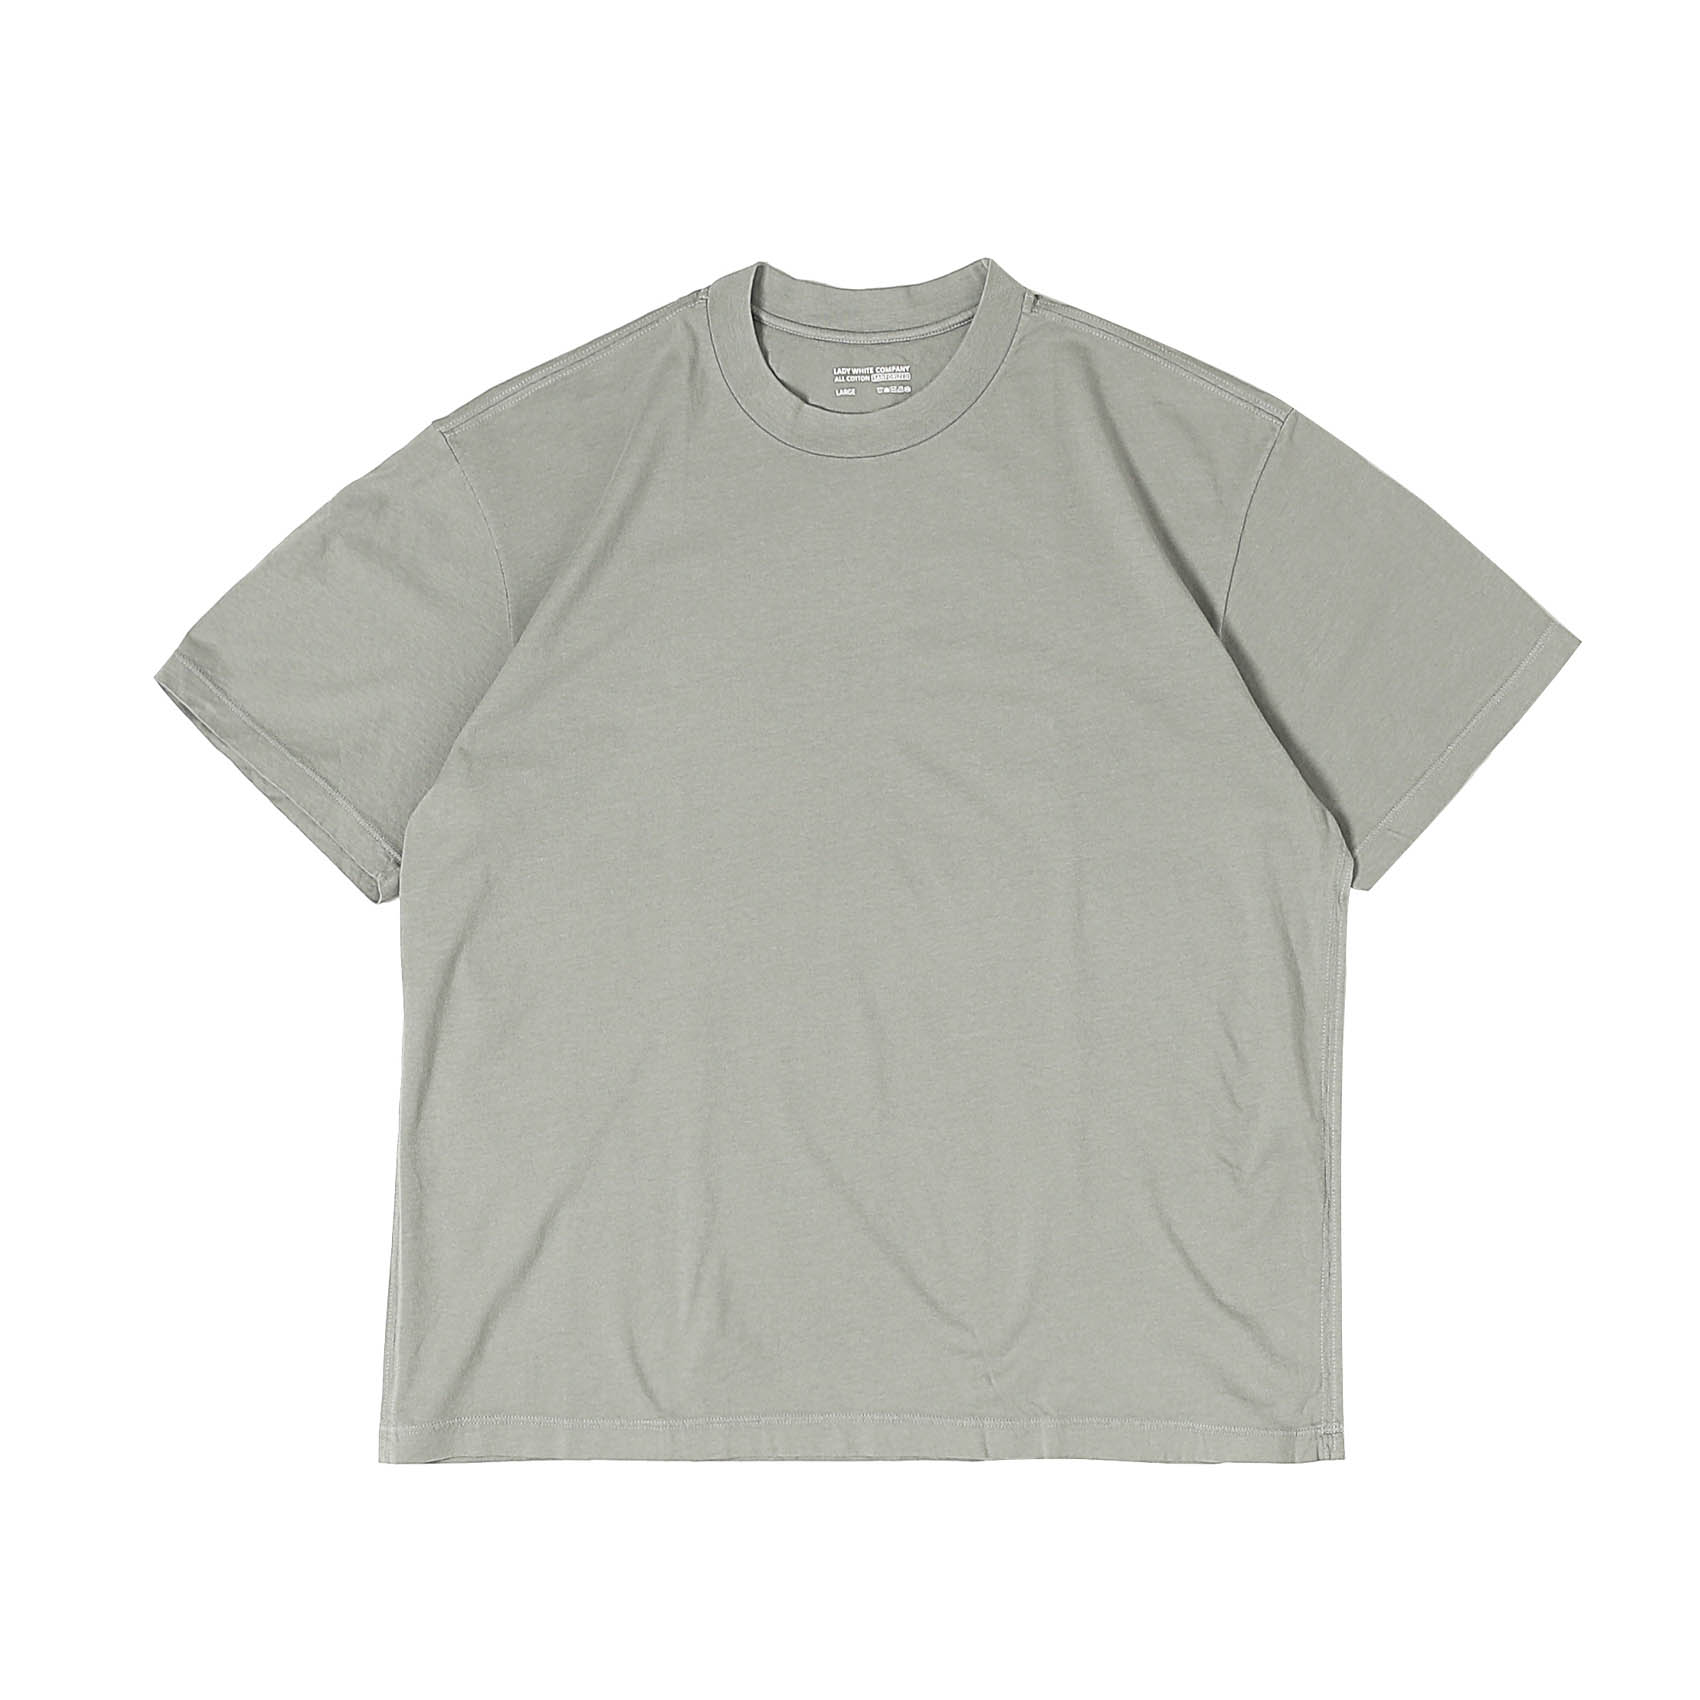 ATHENS T-SHIRT - STEEL GREY